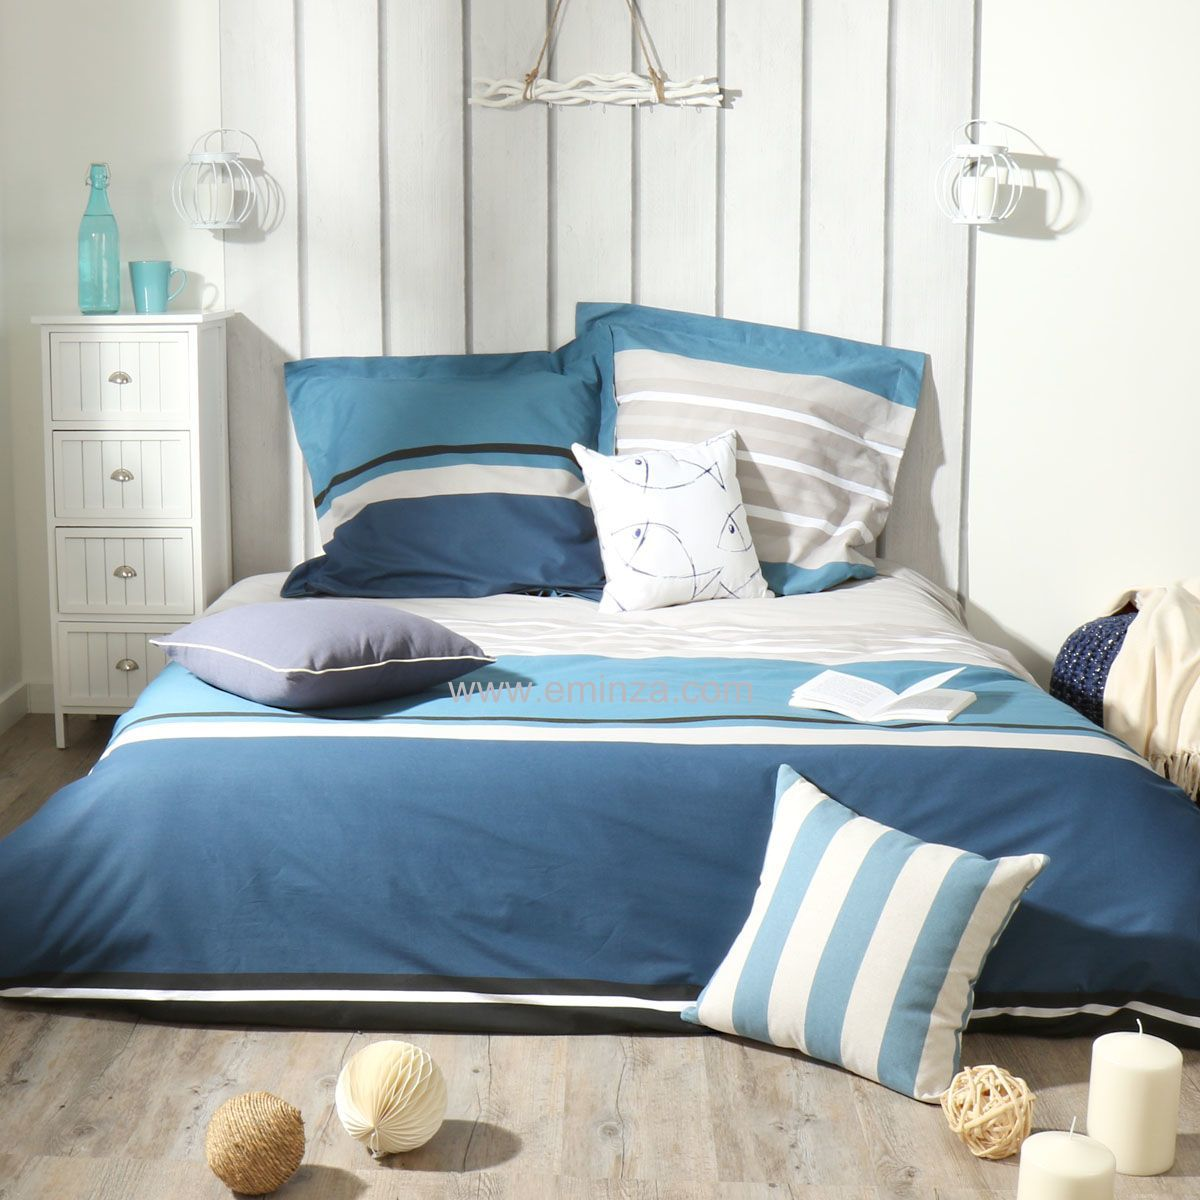 housse de couette marine housse de couette bleu marine. Black Bedroom Furniture Sets. Home Design Ideas